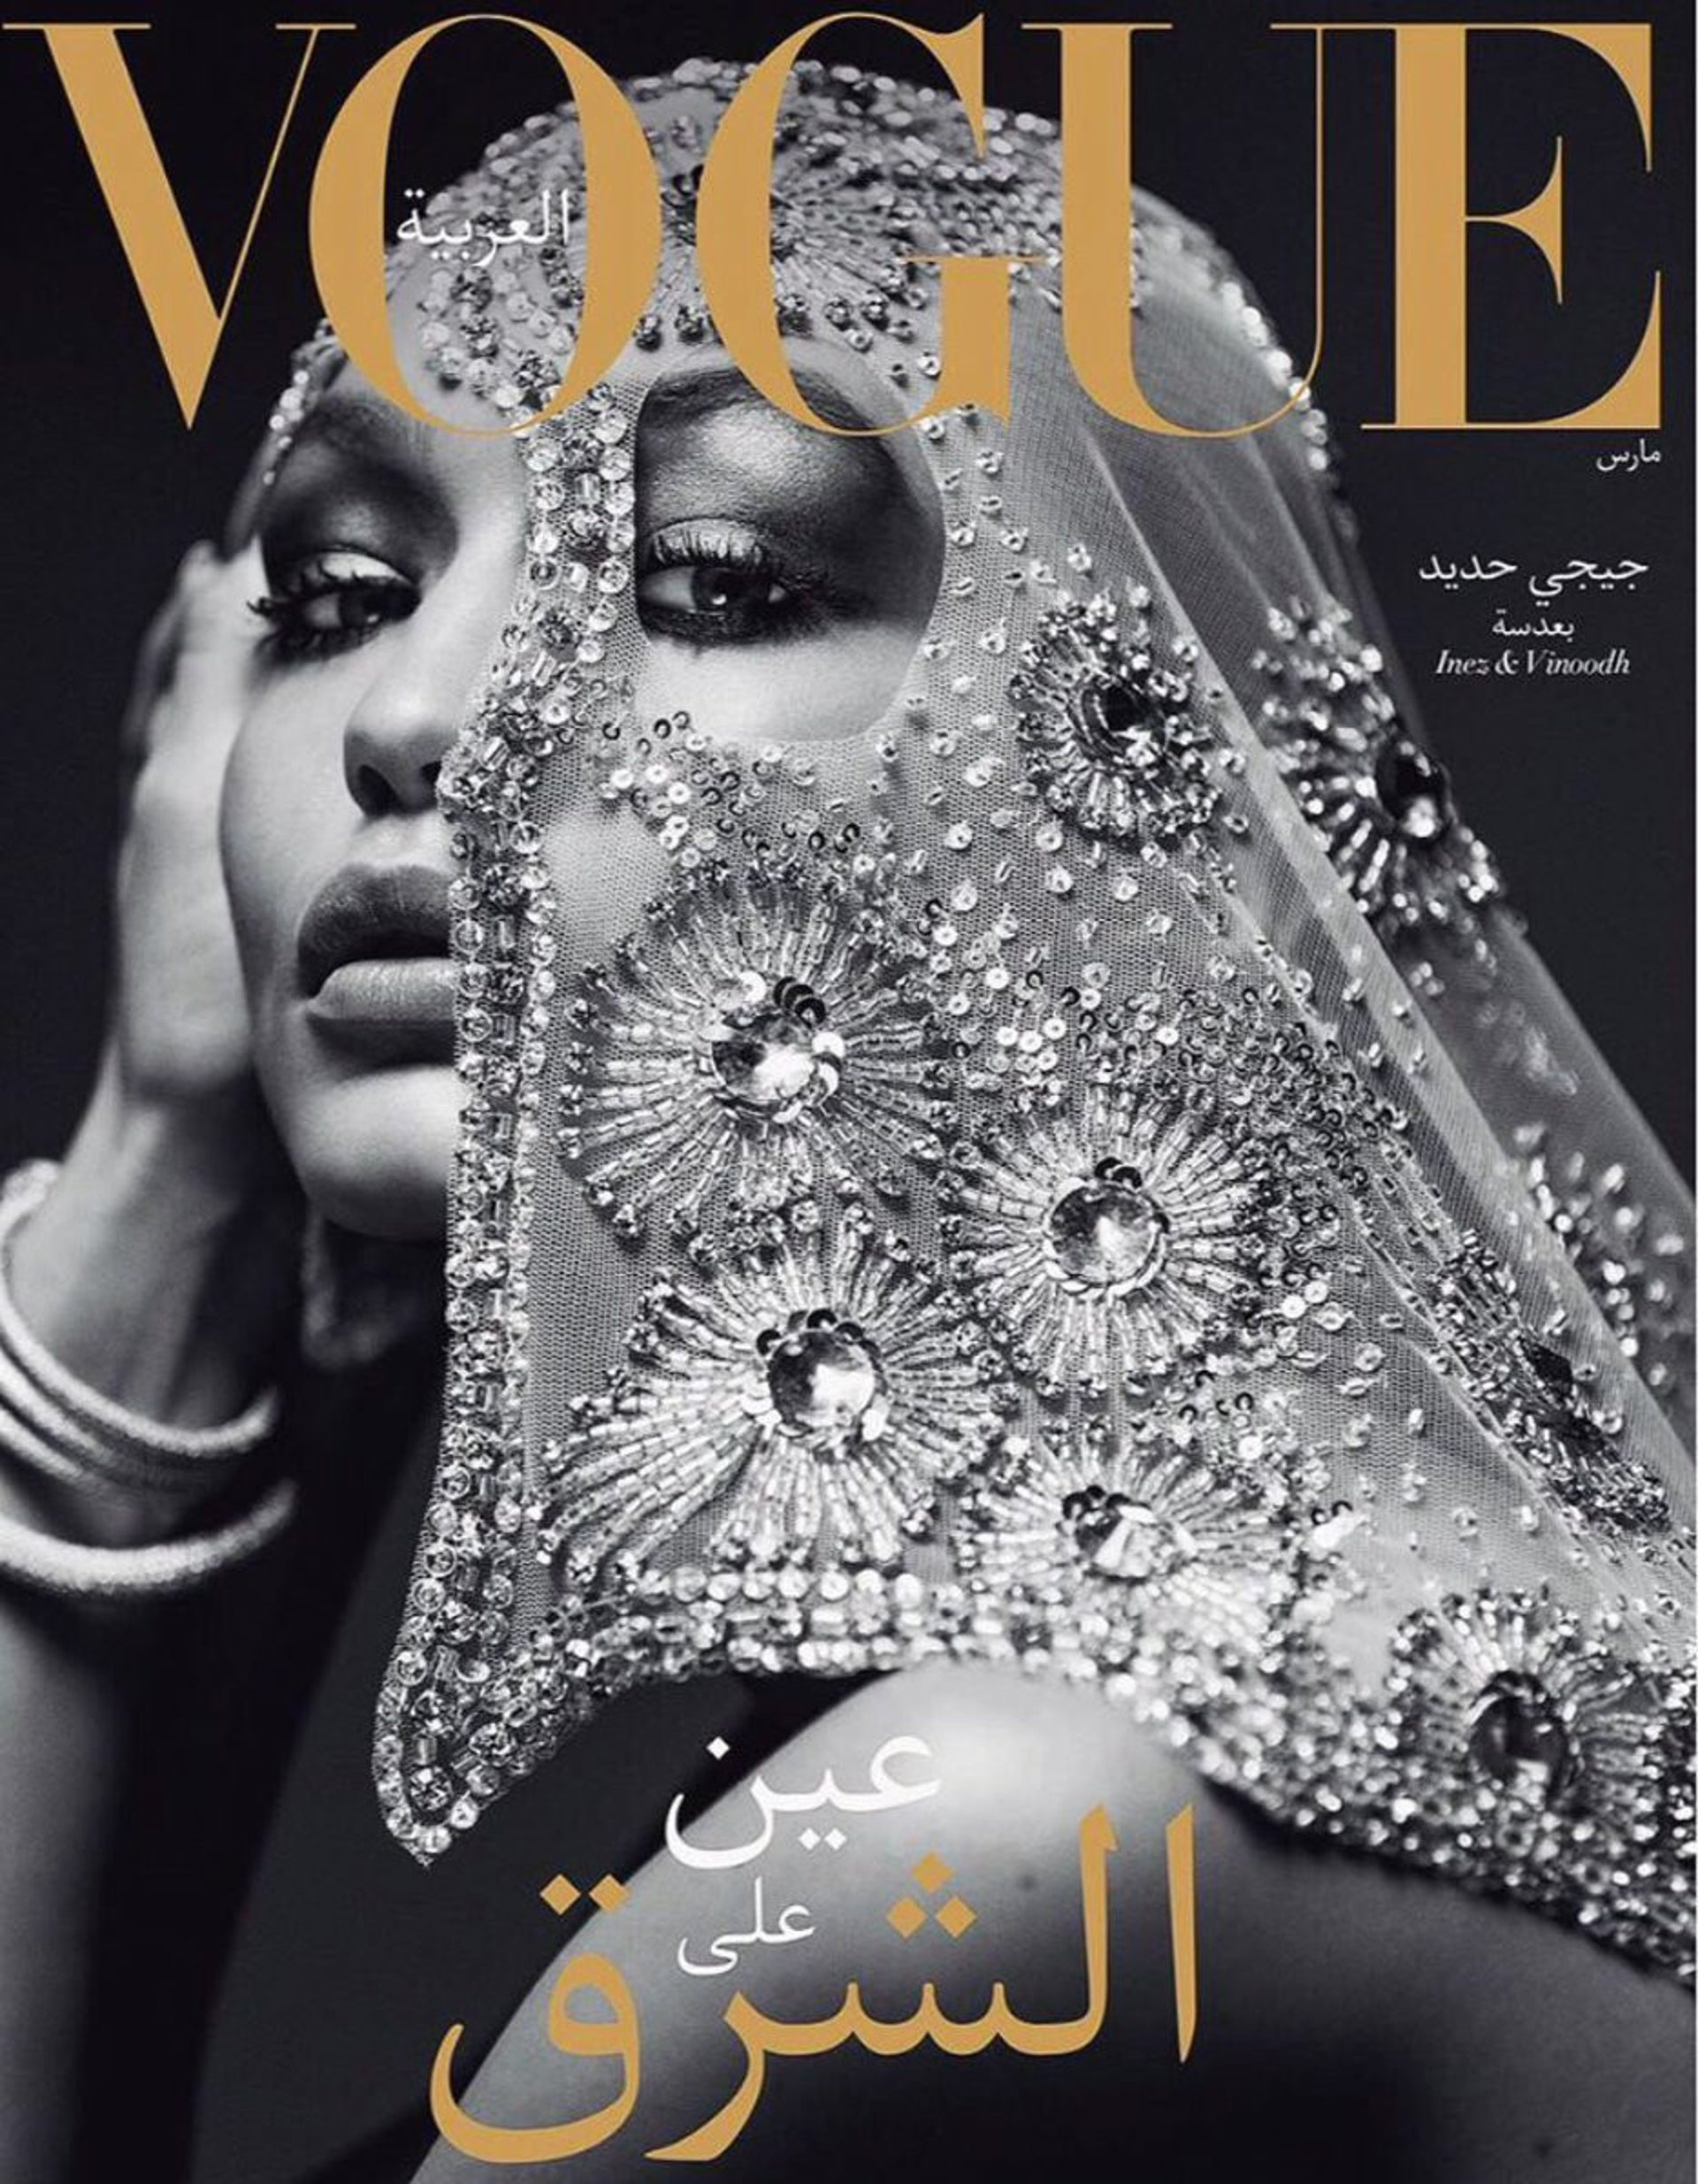 The cover of the launch edition of Vogue Arabia, with Gigi Hadid on the cover.